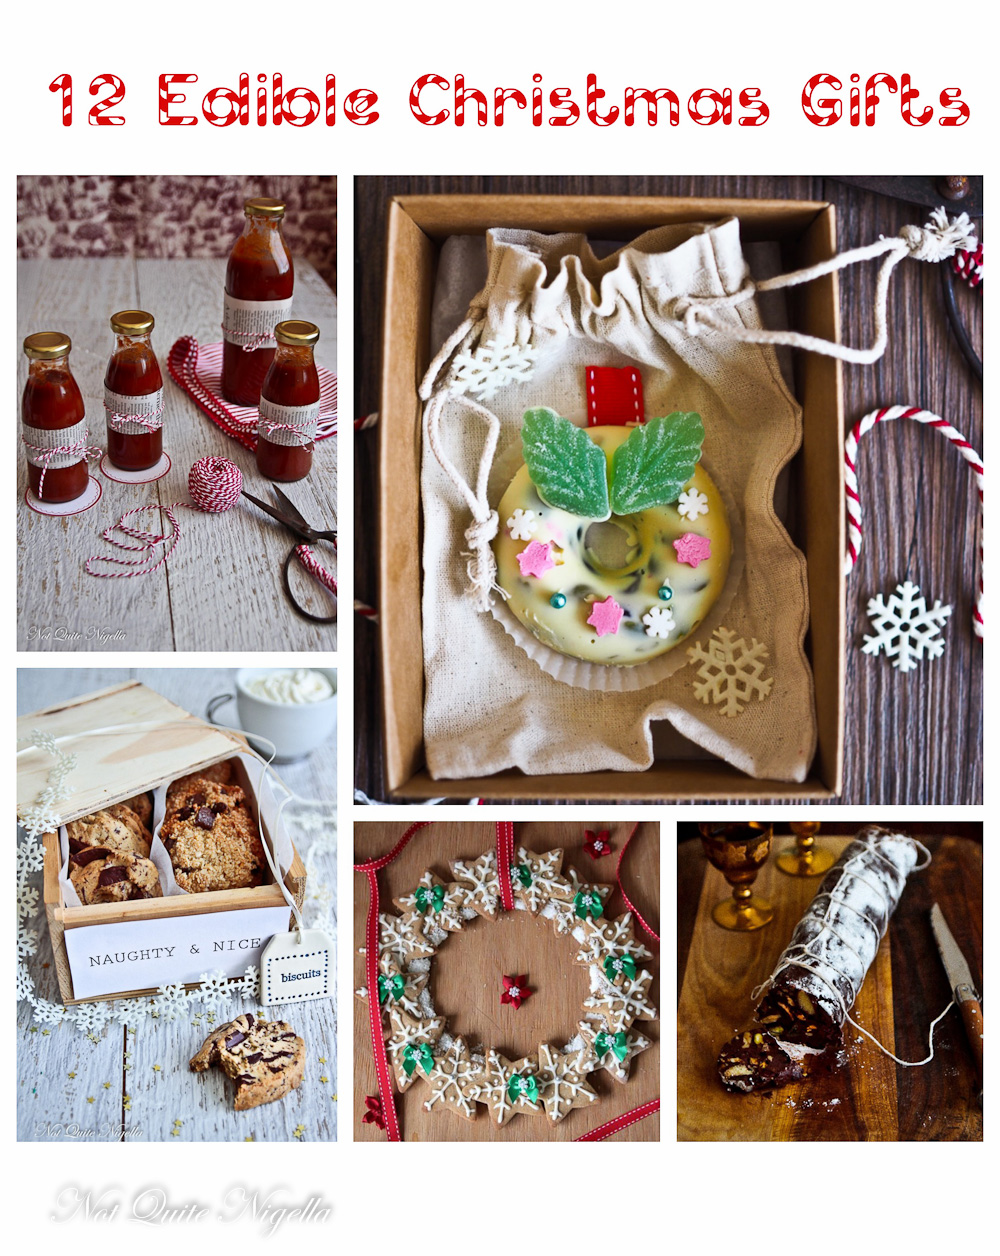 12 Inspired Edible Christmas Ideas Plus Rocky Road Wreaths